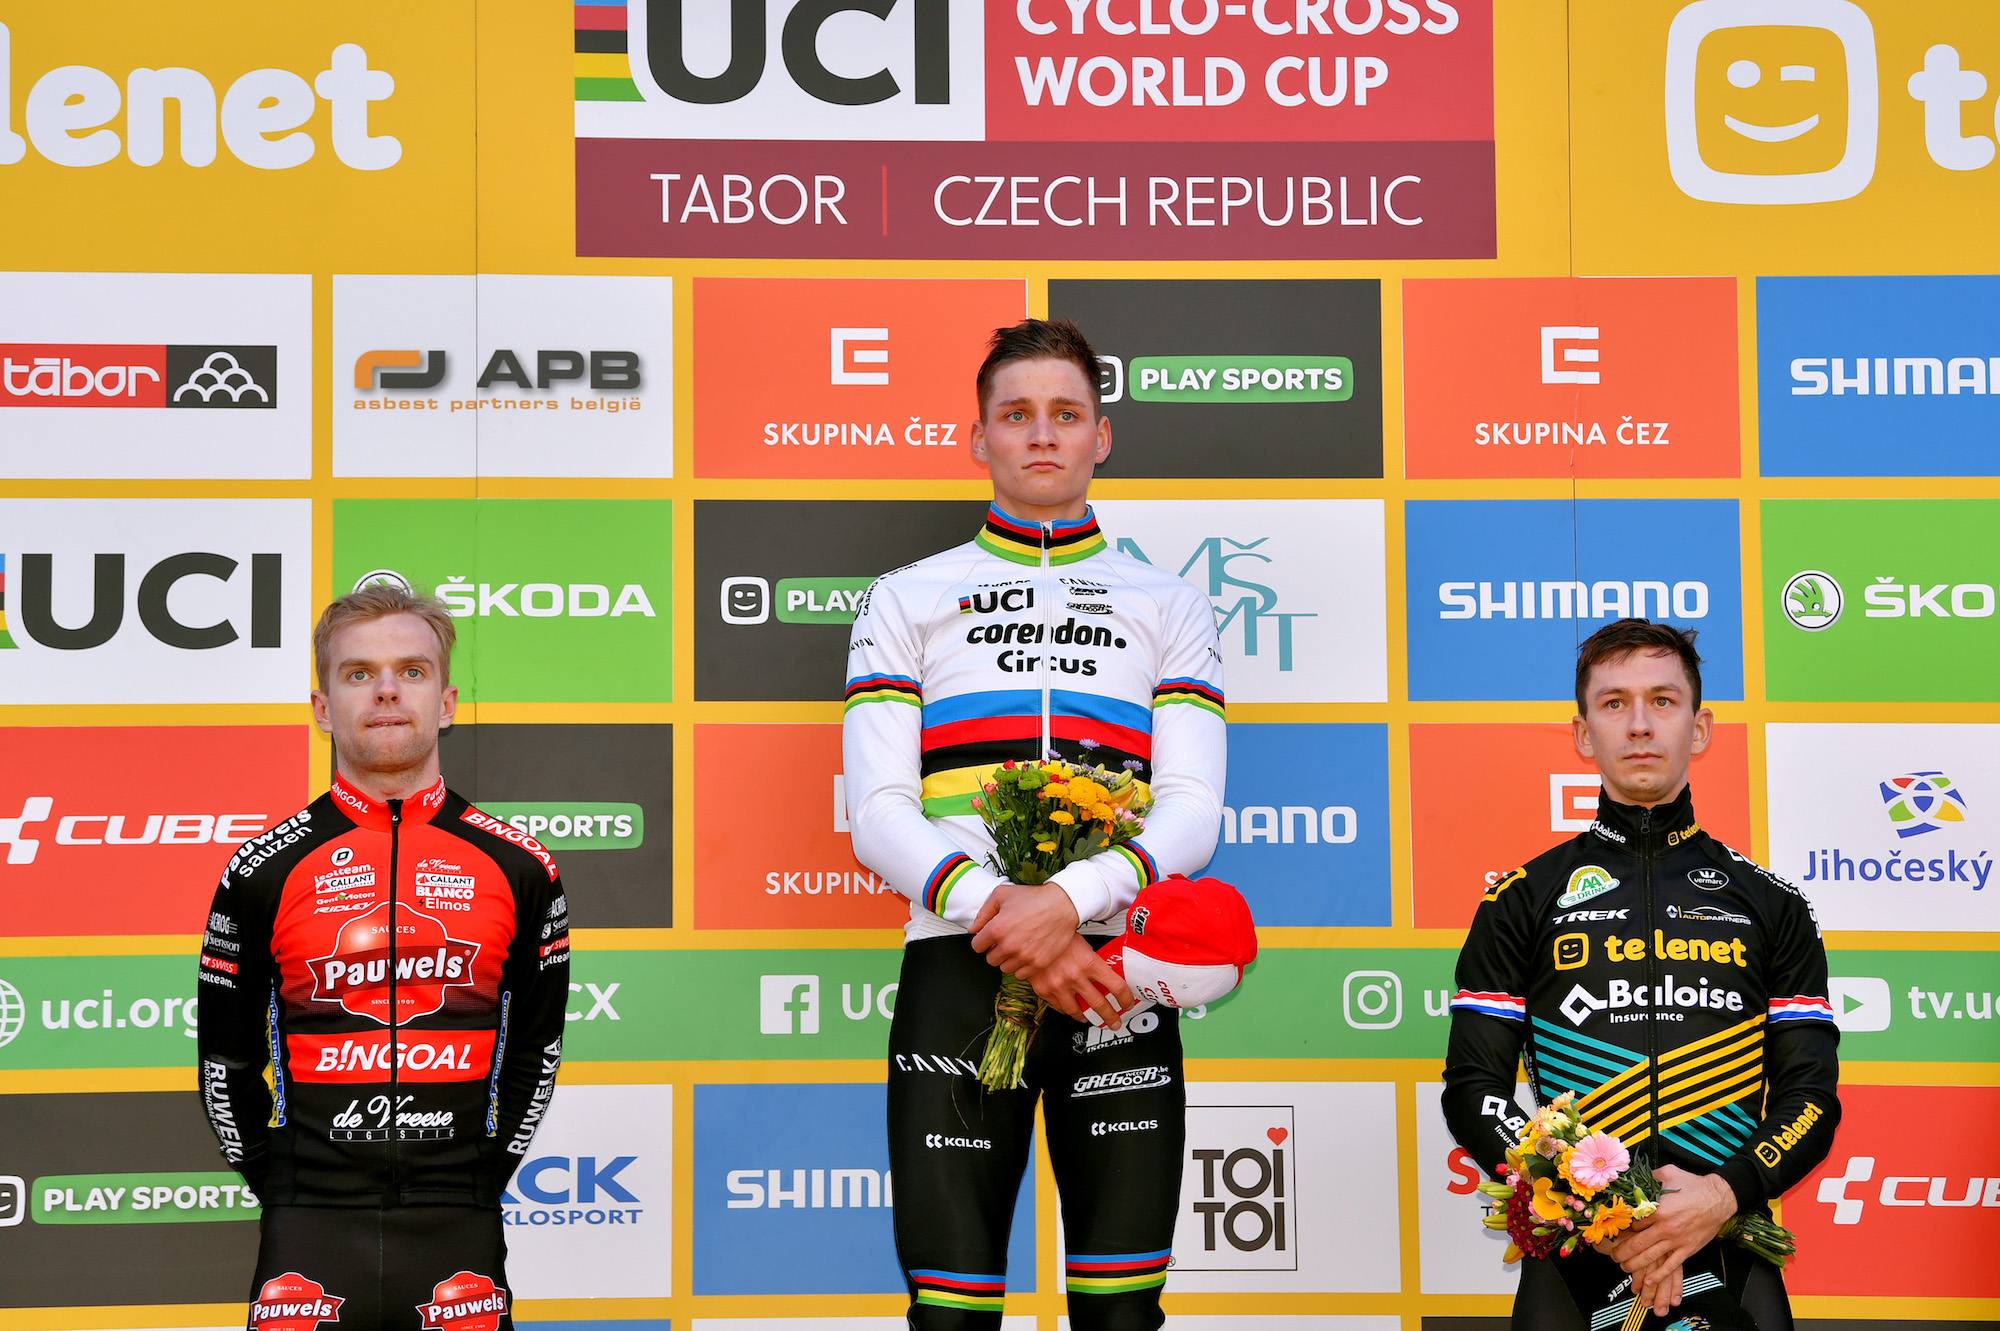 'It has been a very tough week, harder than expected' says Mathieu van der Poel after cyclocross World Cup win